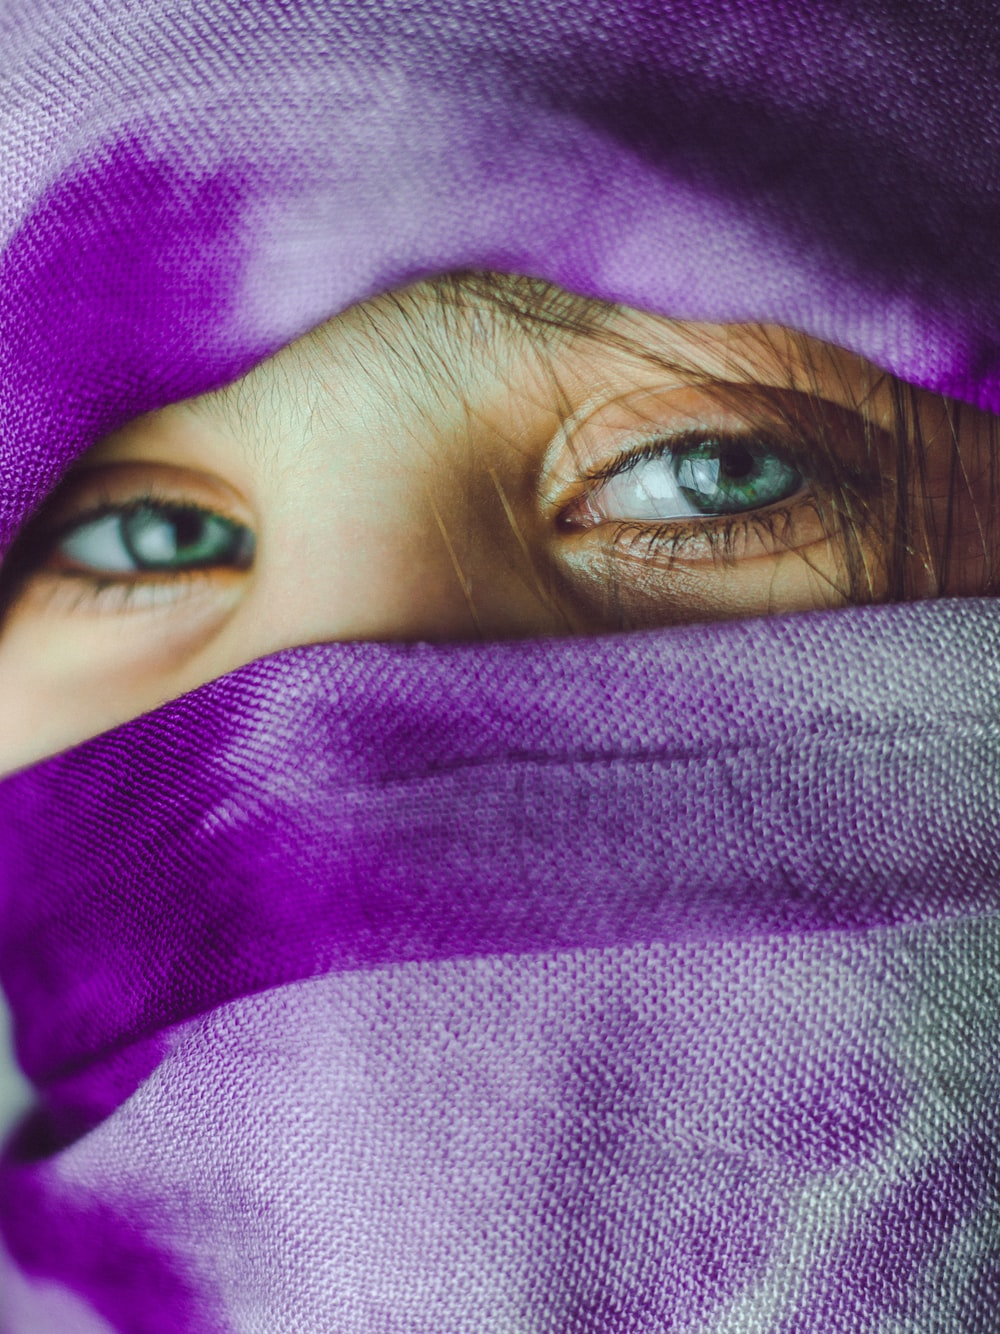 500 Hijab Pictures Hd Download Free Images On Unsplash It also support adnroid pda. 500 hijab pictures hd download